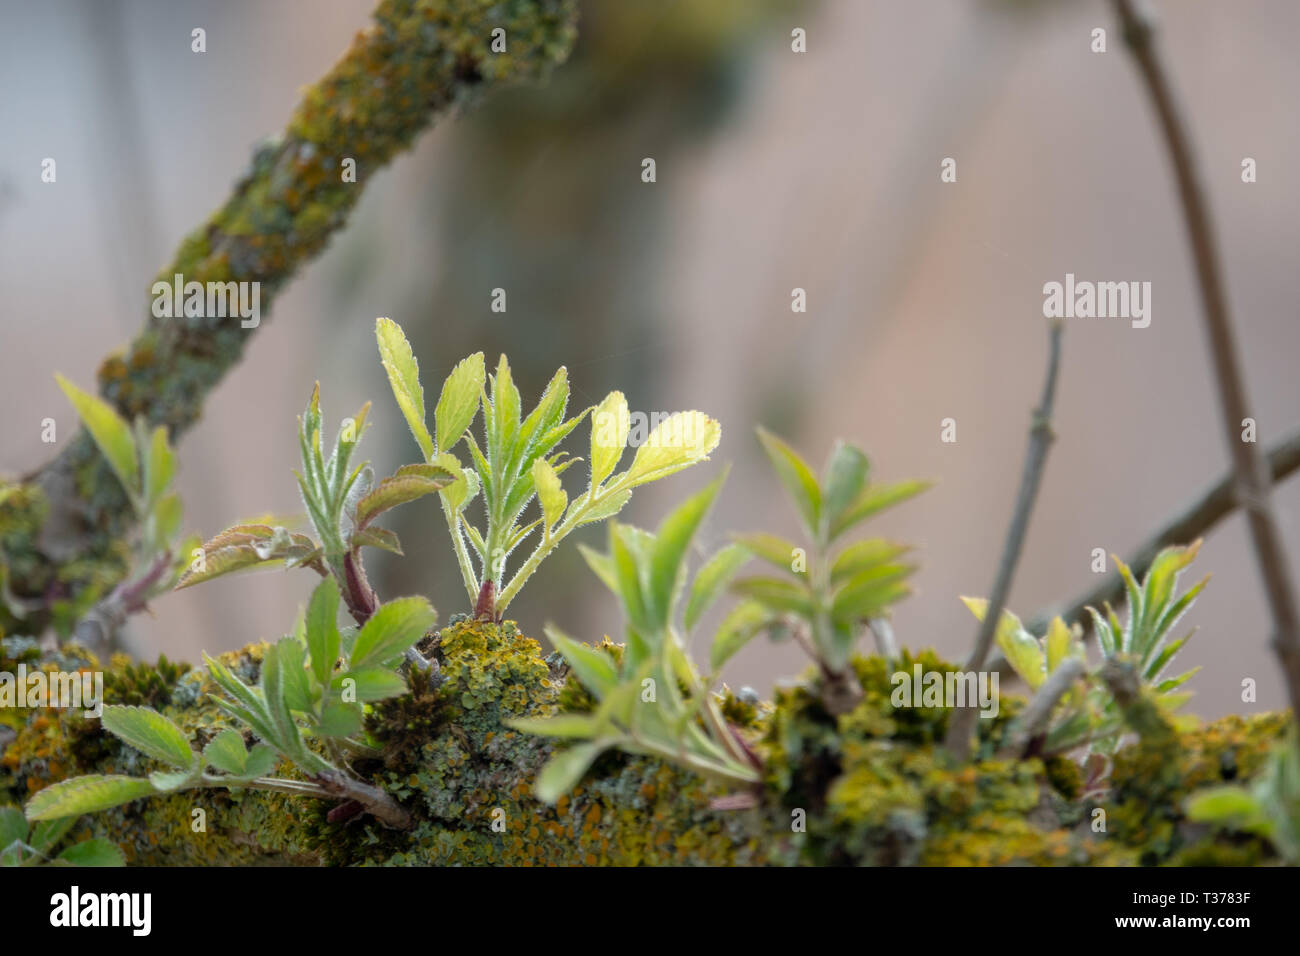 young shoots grow from an old branch Stock Photo